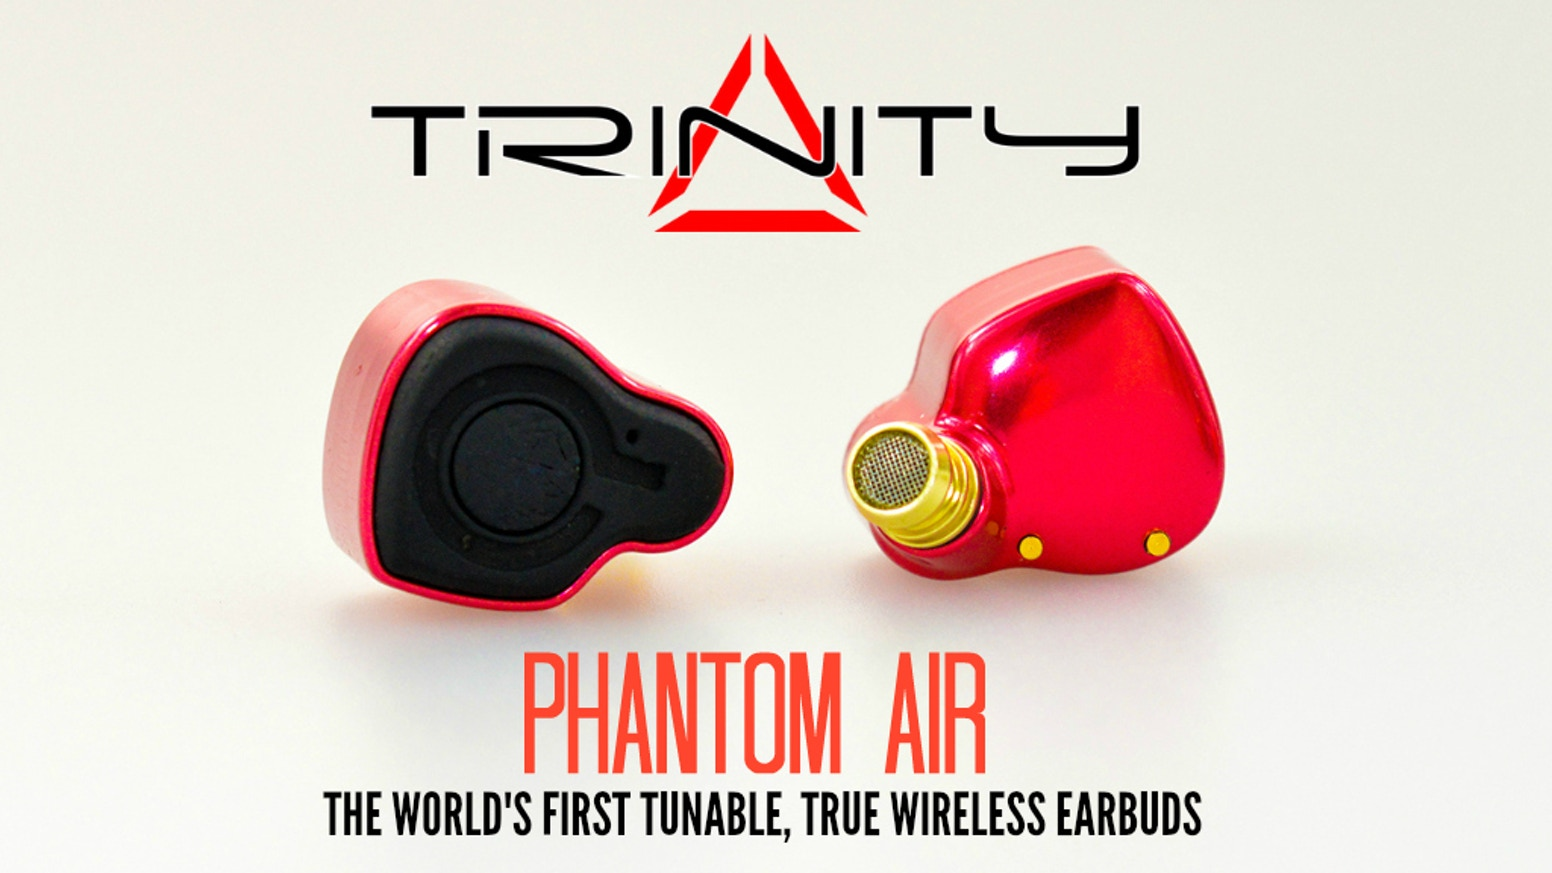 Phantom Air is the NEW benchmark for wireless earbuds. Tuneable, high quality sound and high battery life that recharges on the go.